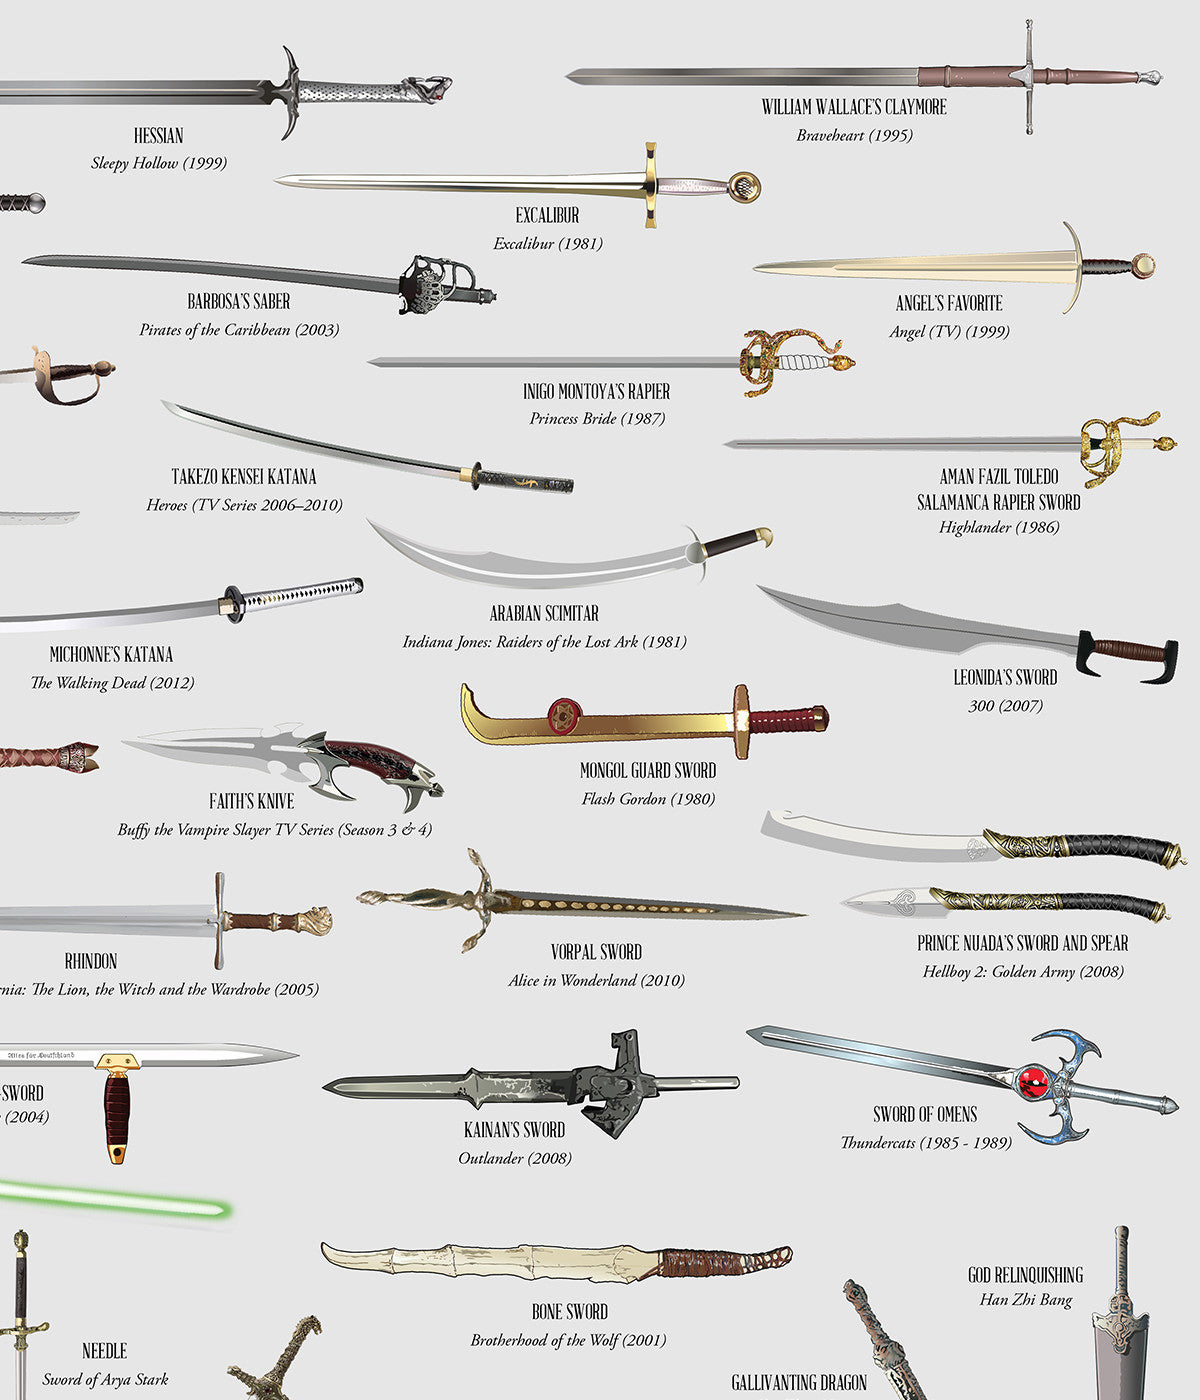 The Filmography of Blades